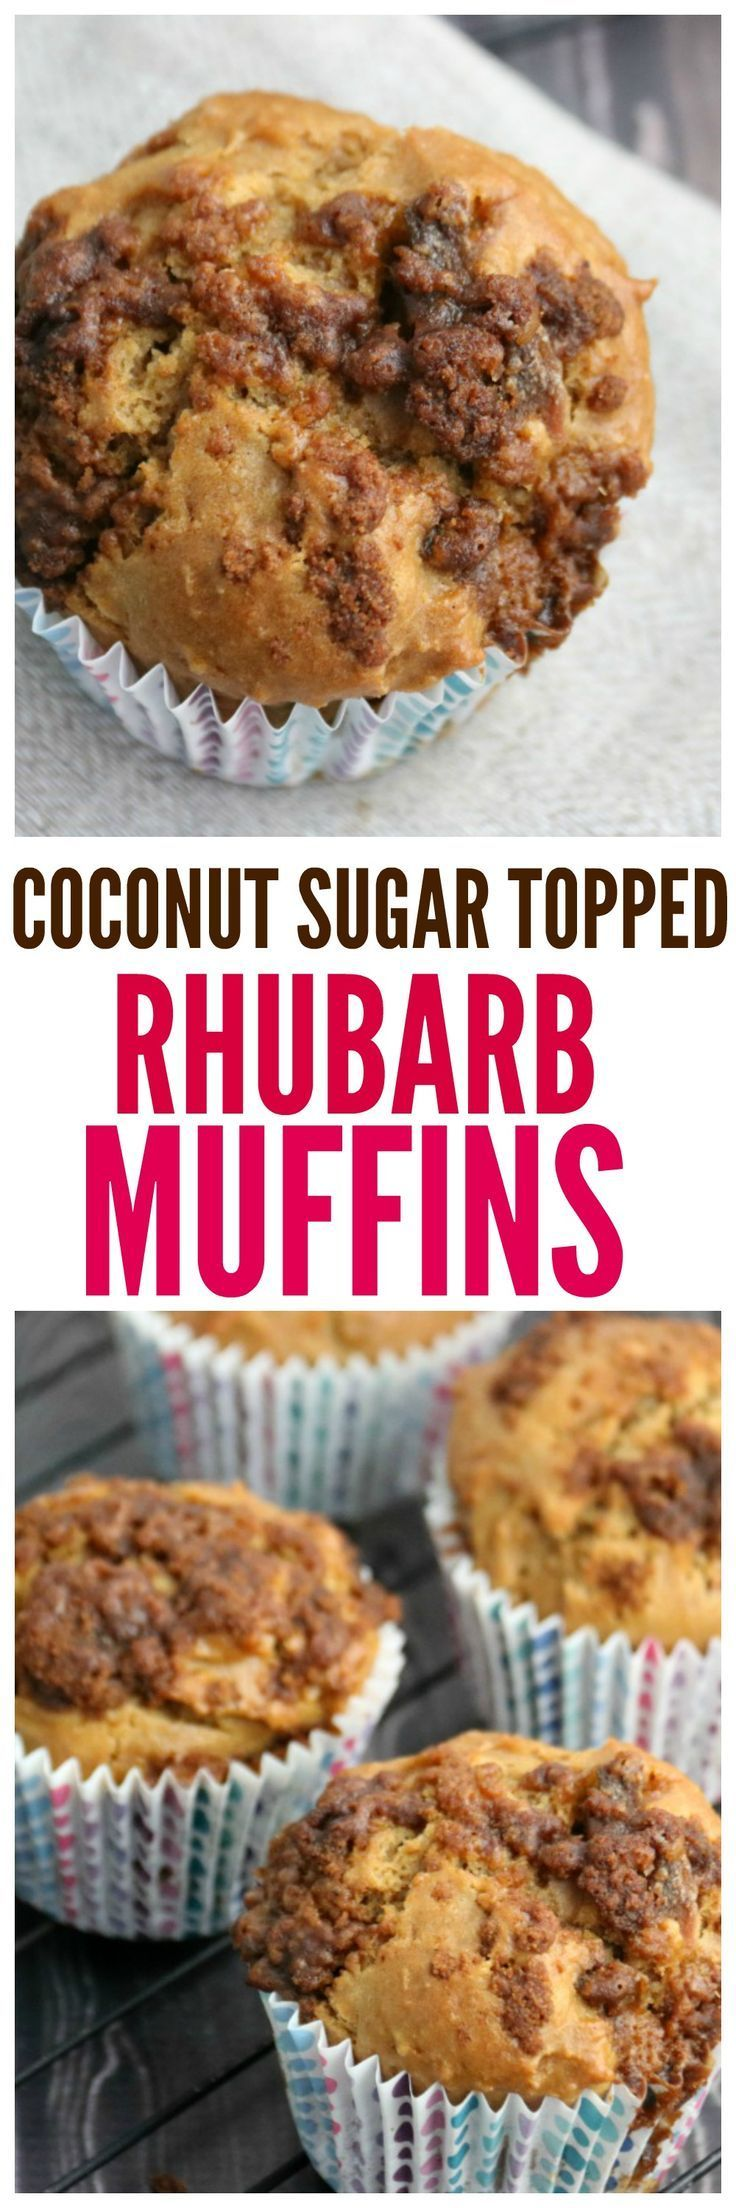 Coconut Sugar Topped Rhubarb Muffin Recipe - a delicious natural sugar sweetened muffin that is perfect for Springtime!